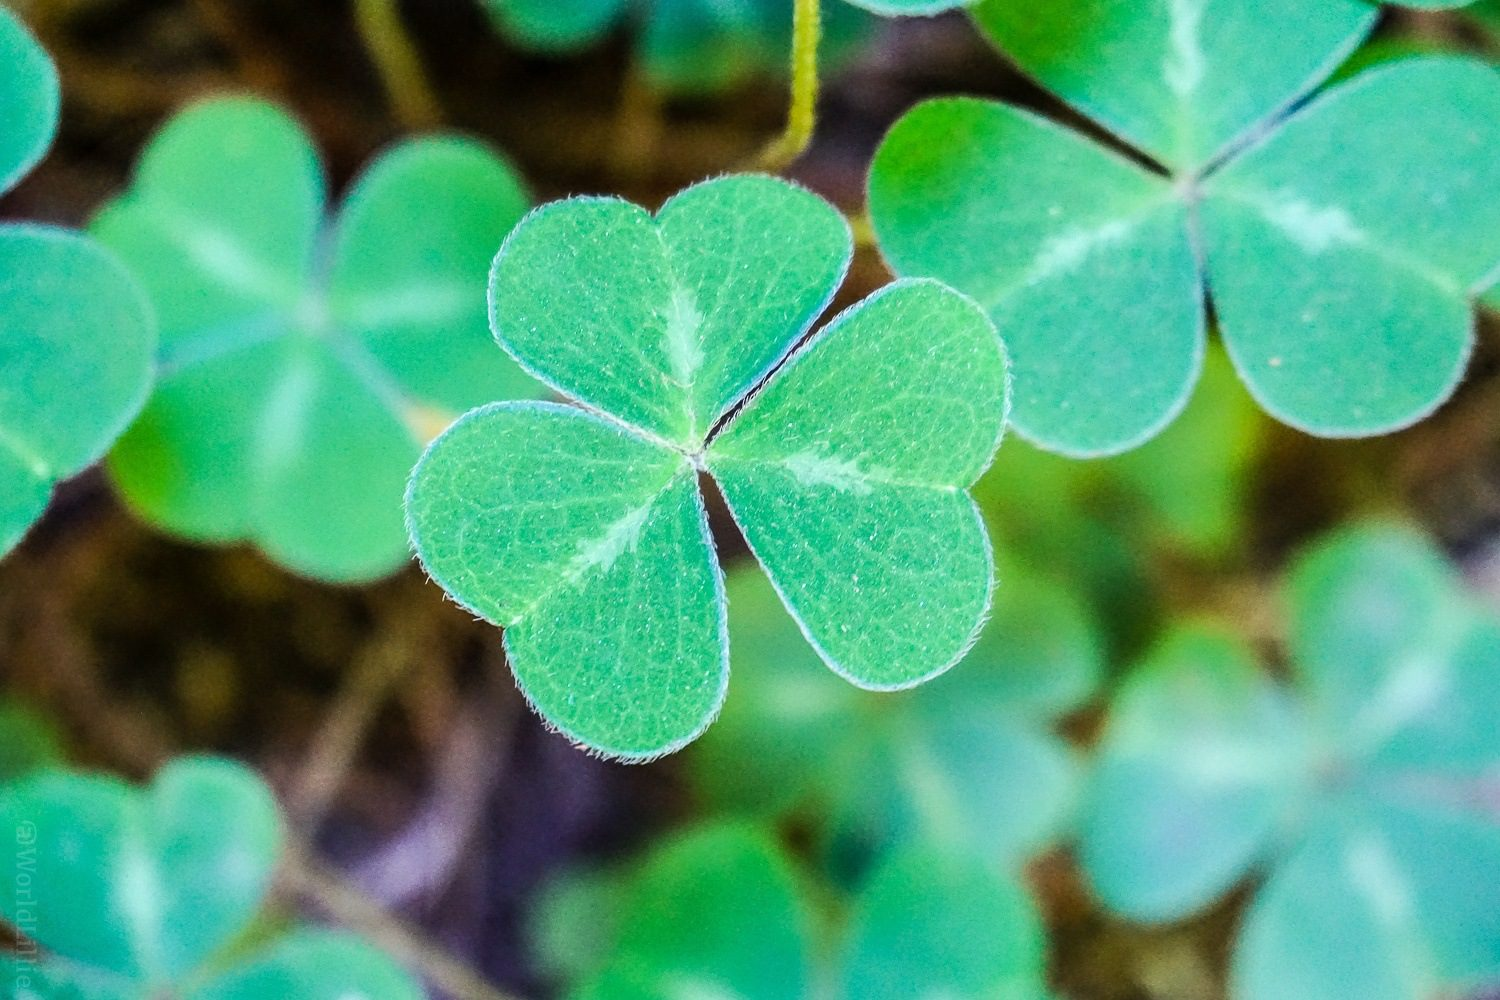 This clover loves you.